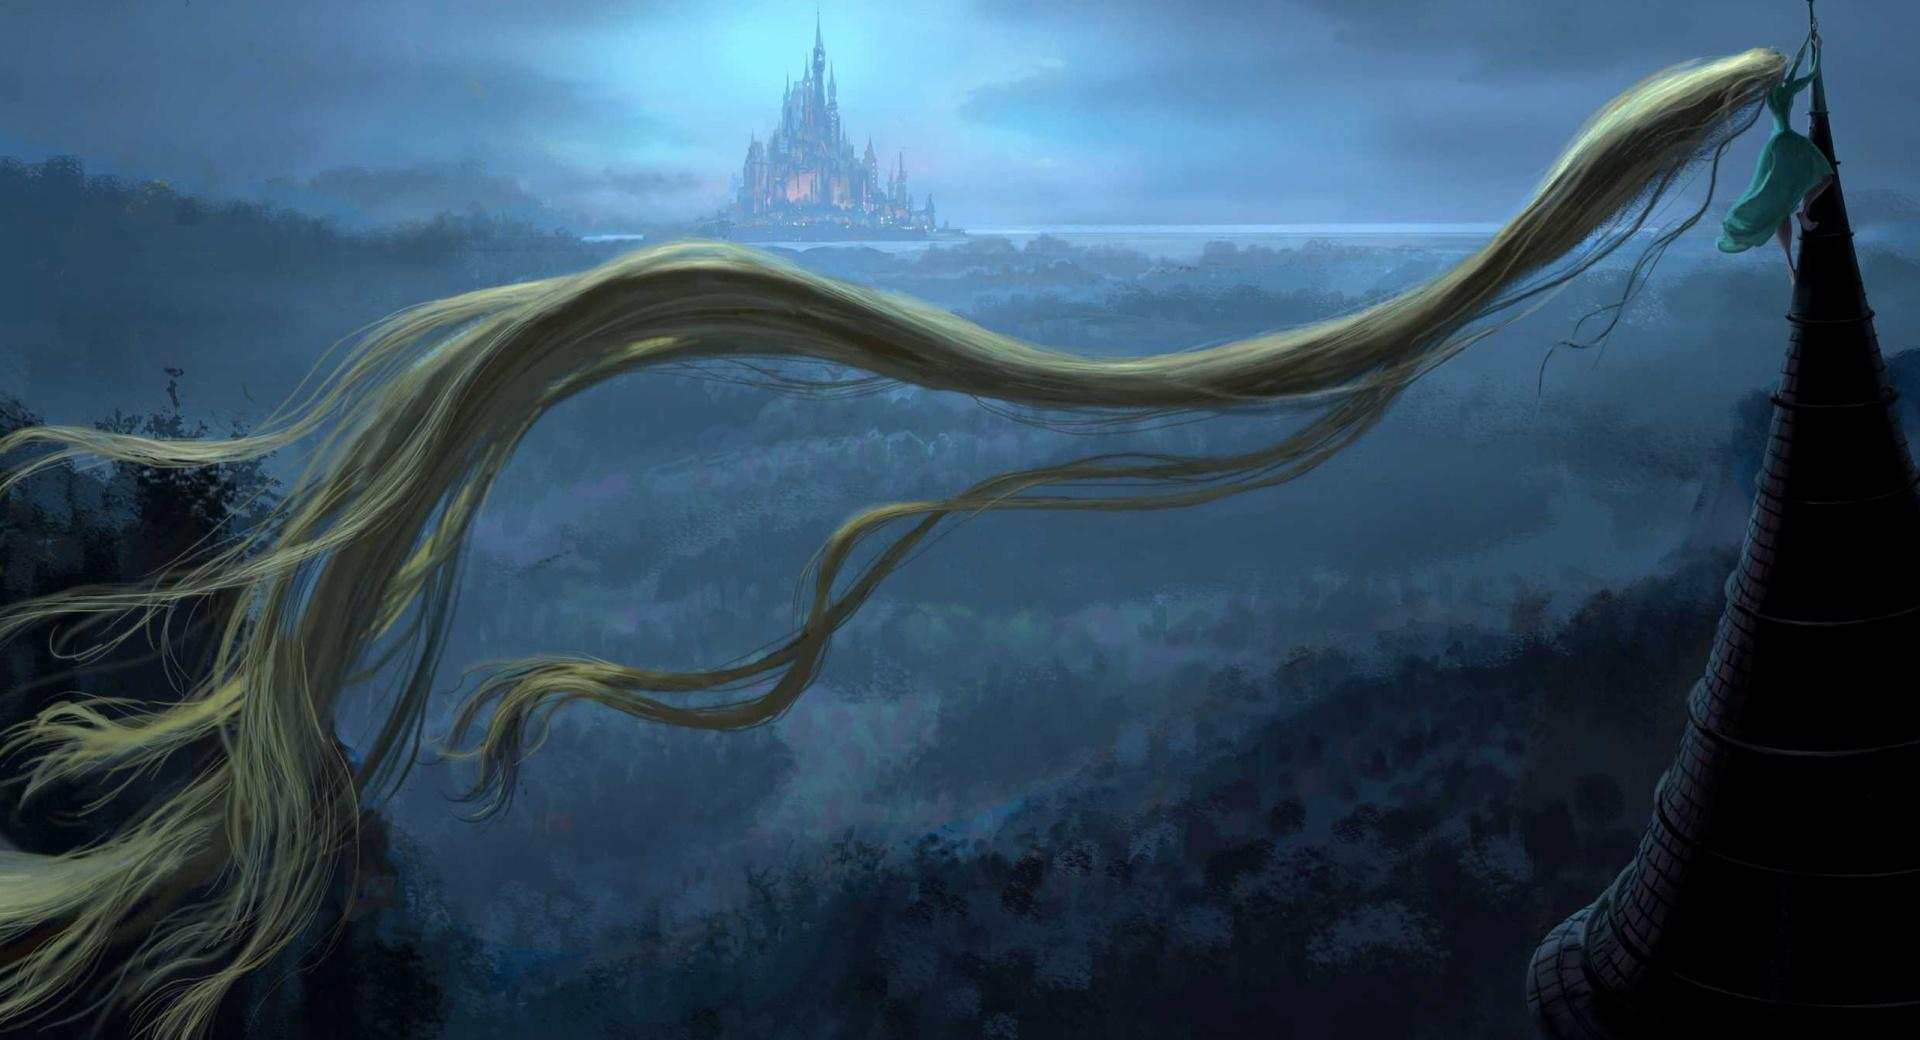 Rapunzel Tower wallpapers HD quality